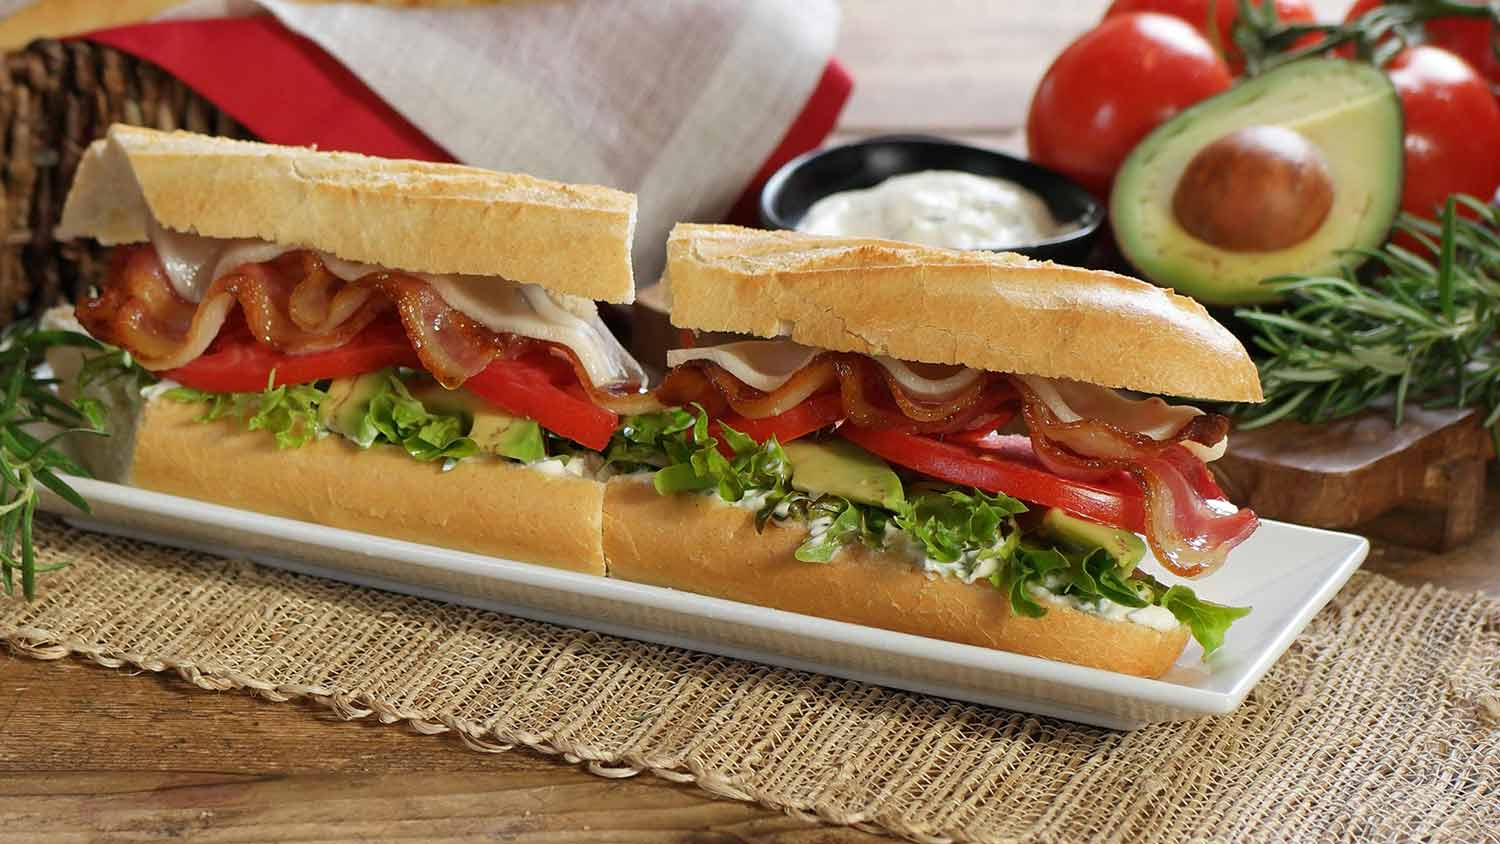 Handcrafted bistro sandwiches